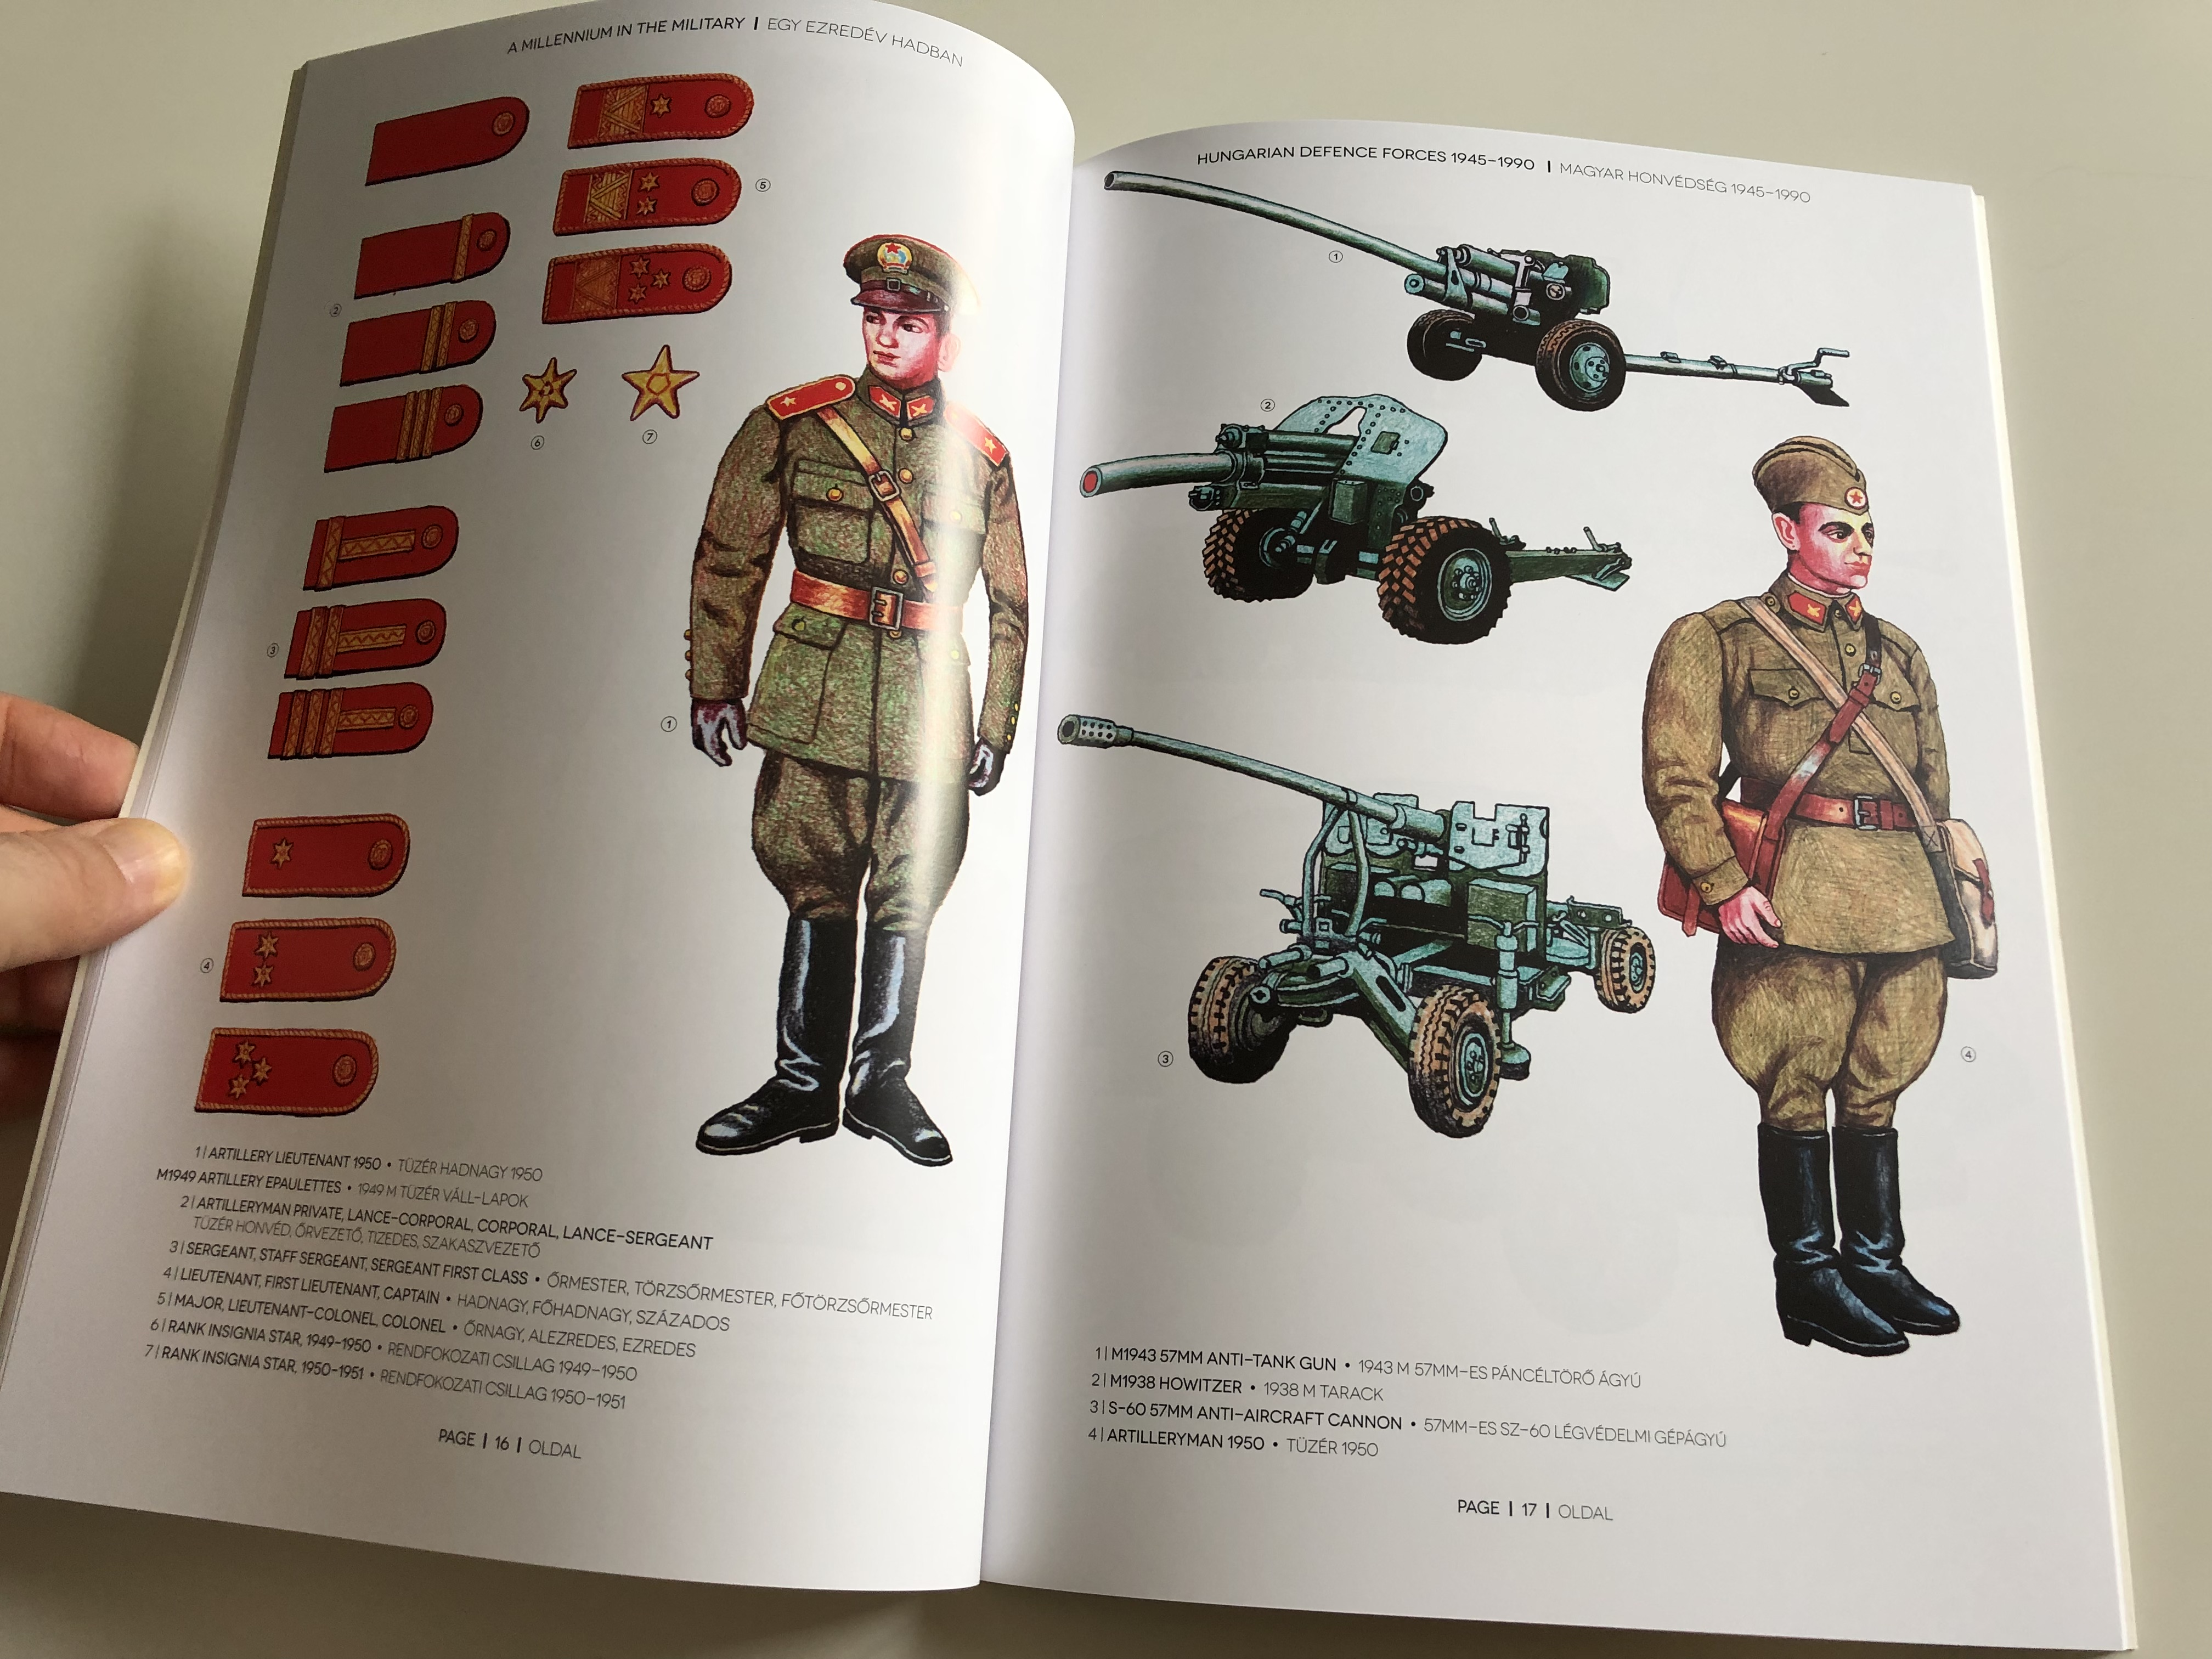 hungarian-defence-forces-1945-1990-by-gy-z-somogyi-magyar-honv-ds-g-1945-1990-a-millennium-in-the-military-egy-ezred-v-hadban-paperback-2019-hm-zr-nyi-8-.jpg